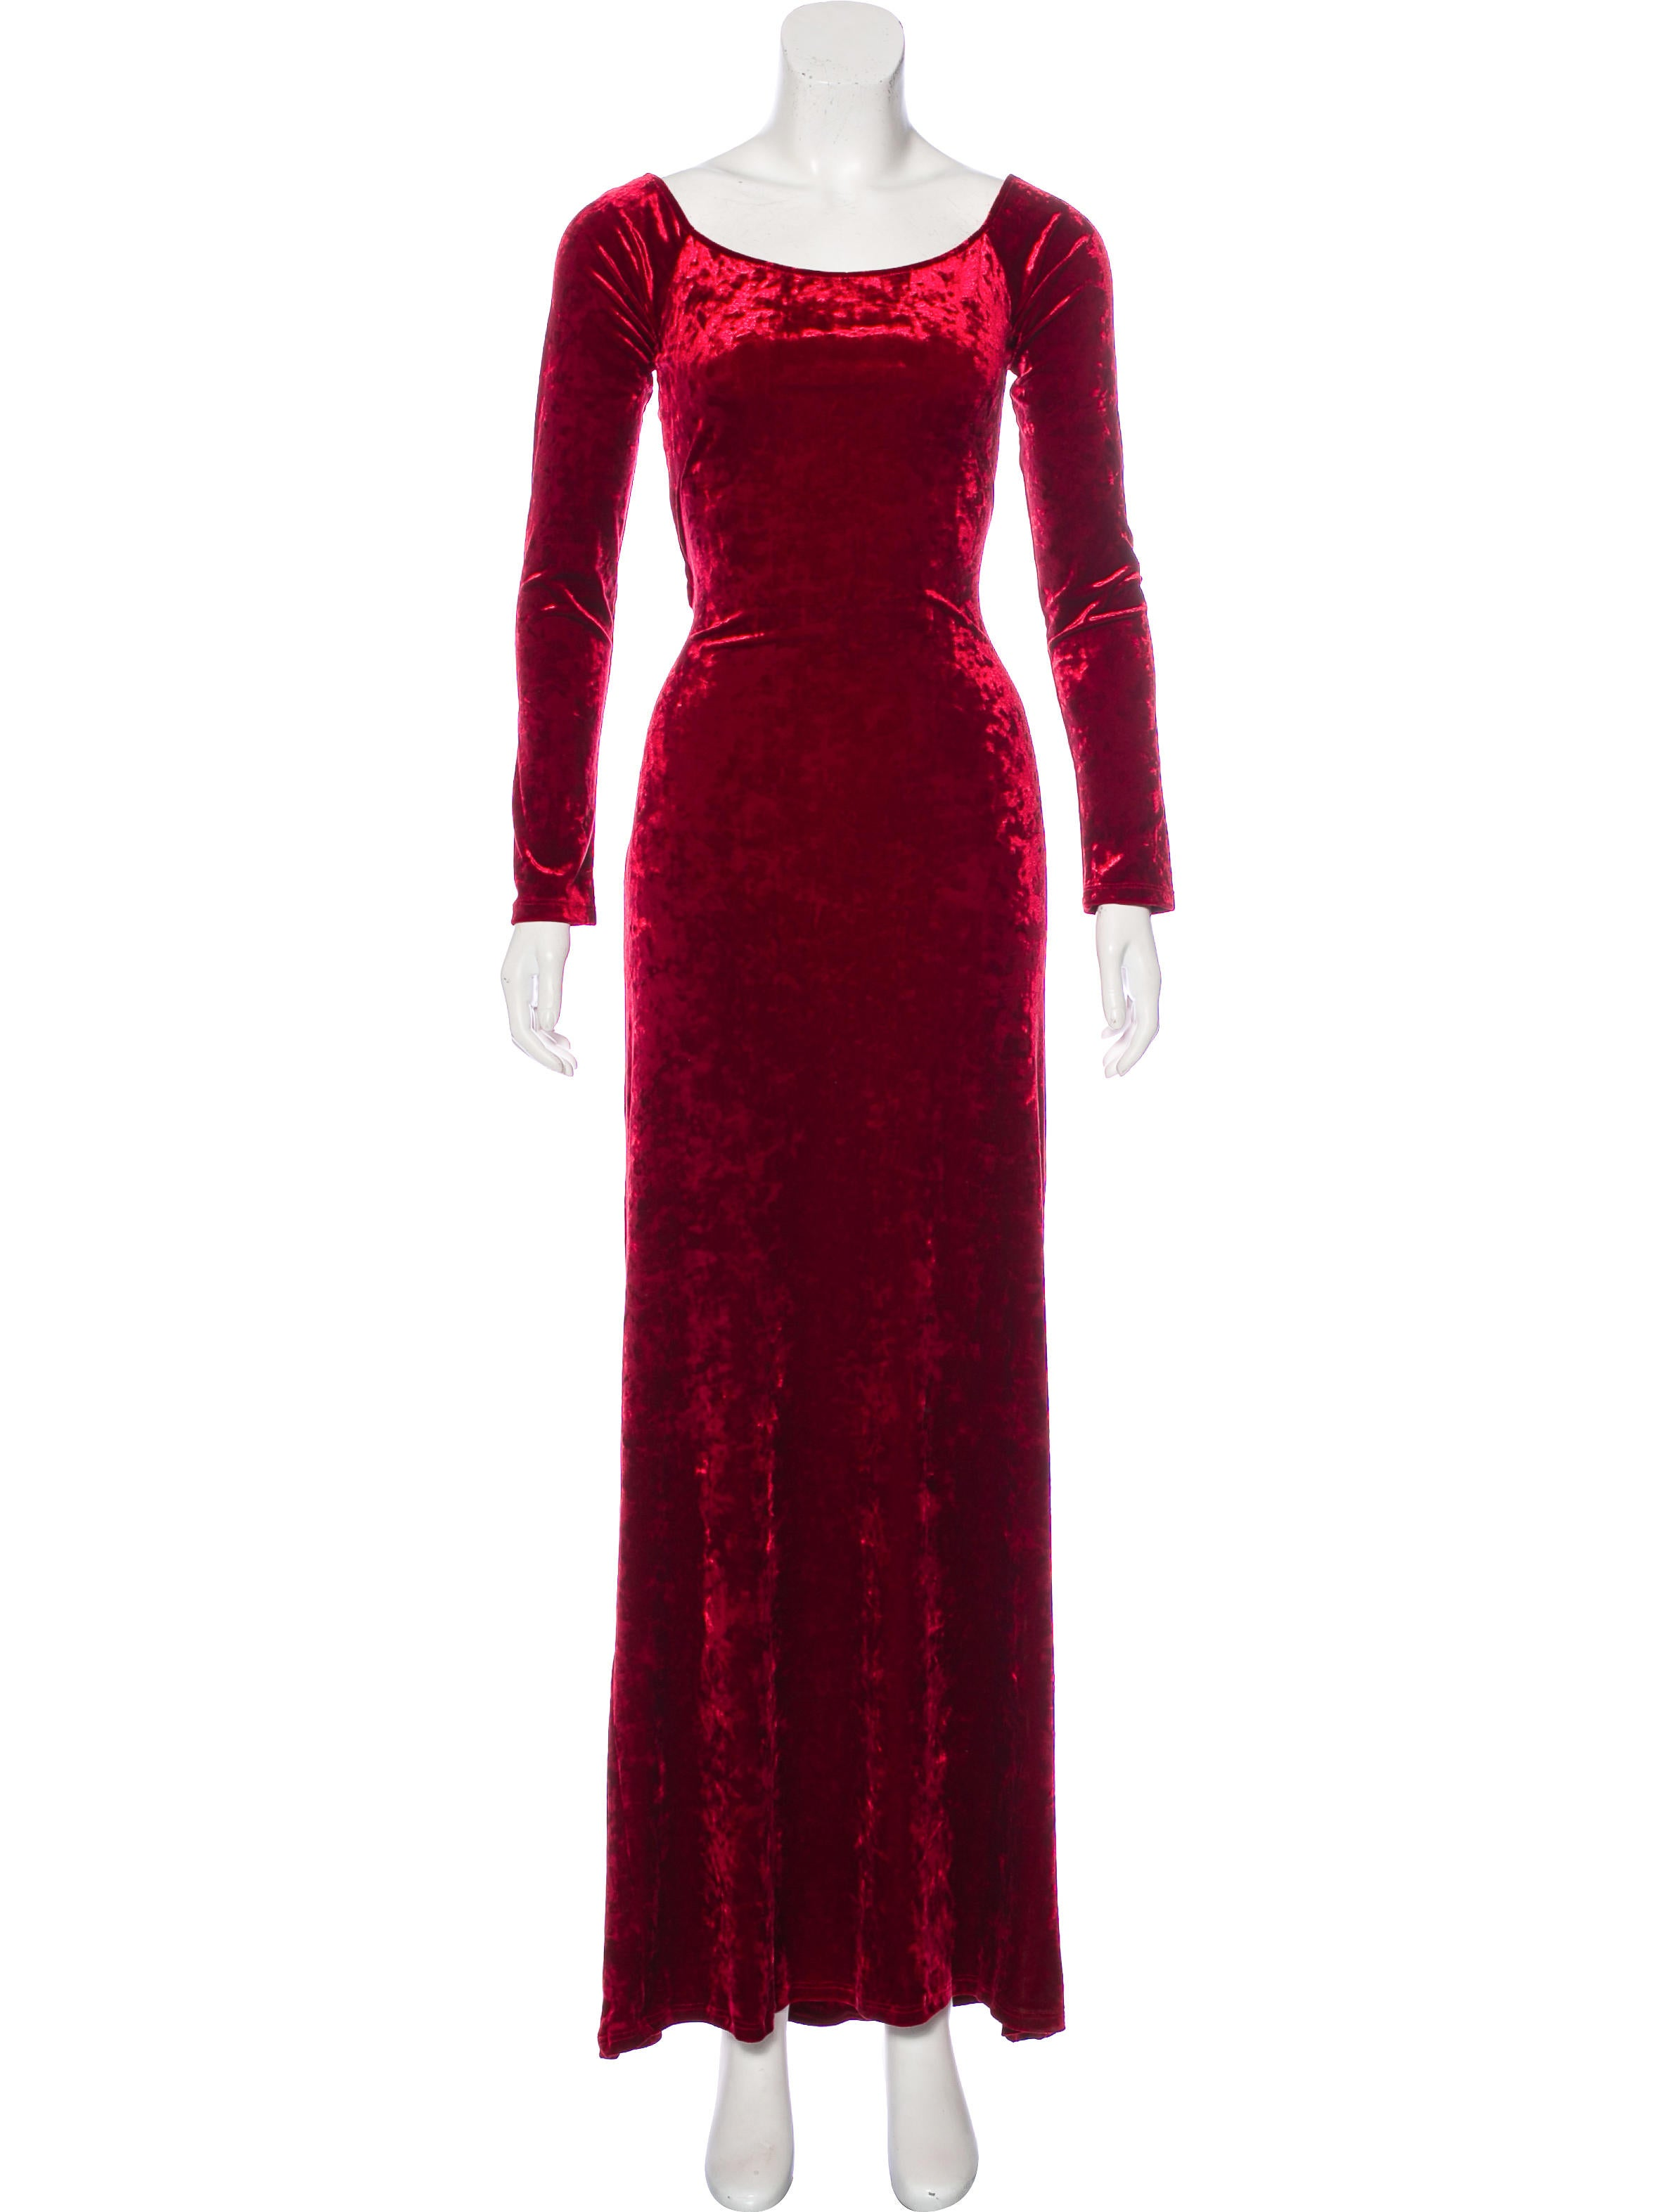 Casadei Velvet Evening Dress - Clothing - CEI23551 | The RealReal